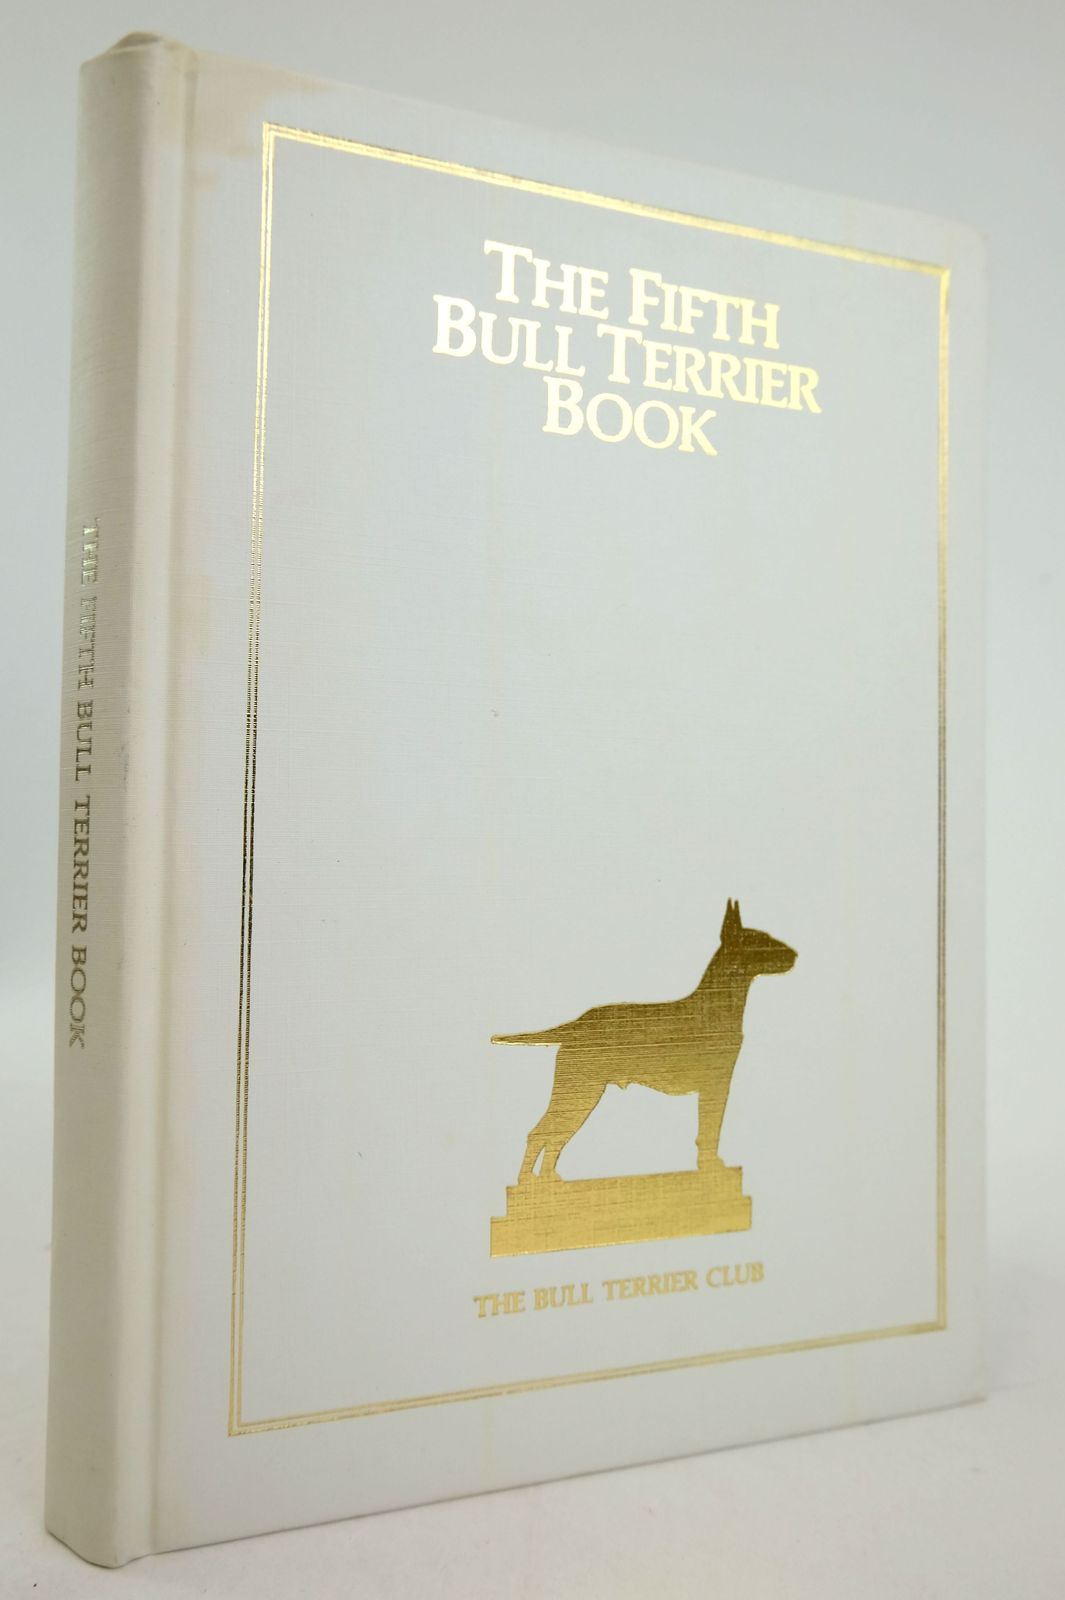 Photo of THE FIFTH BULL TERRIER BOOK- Stock Number: 1819692